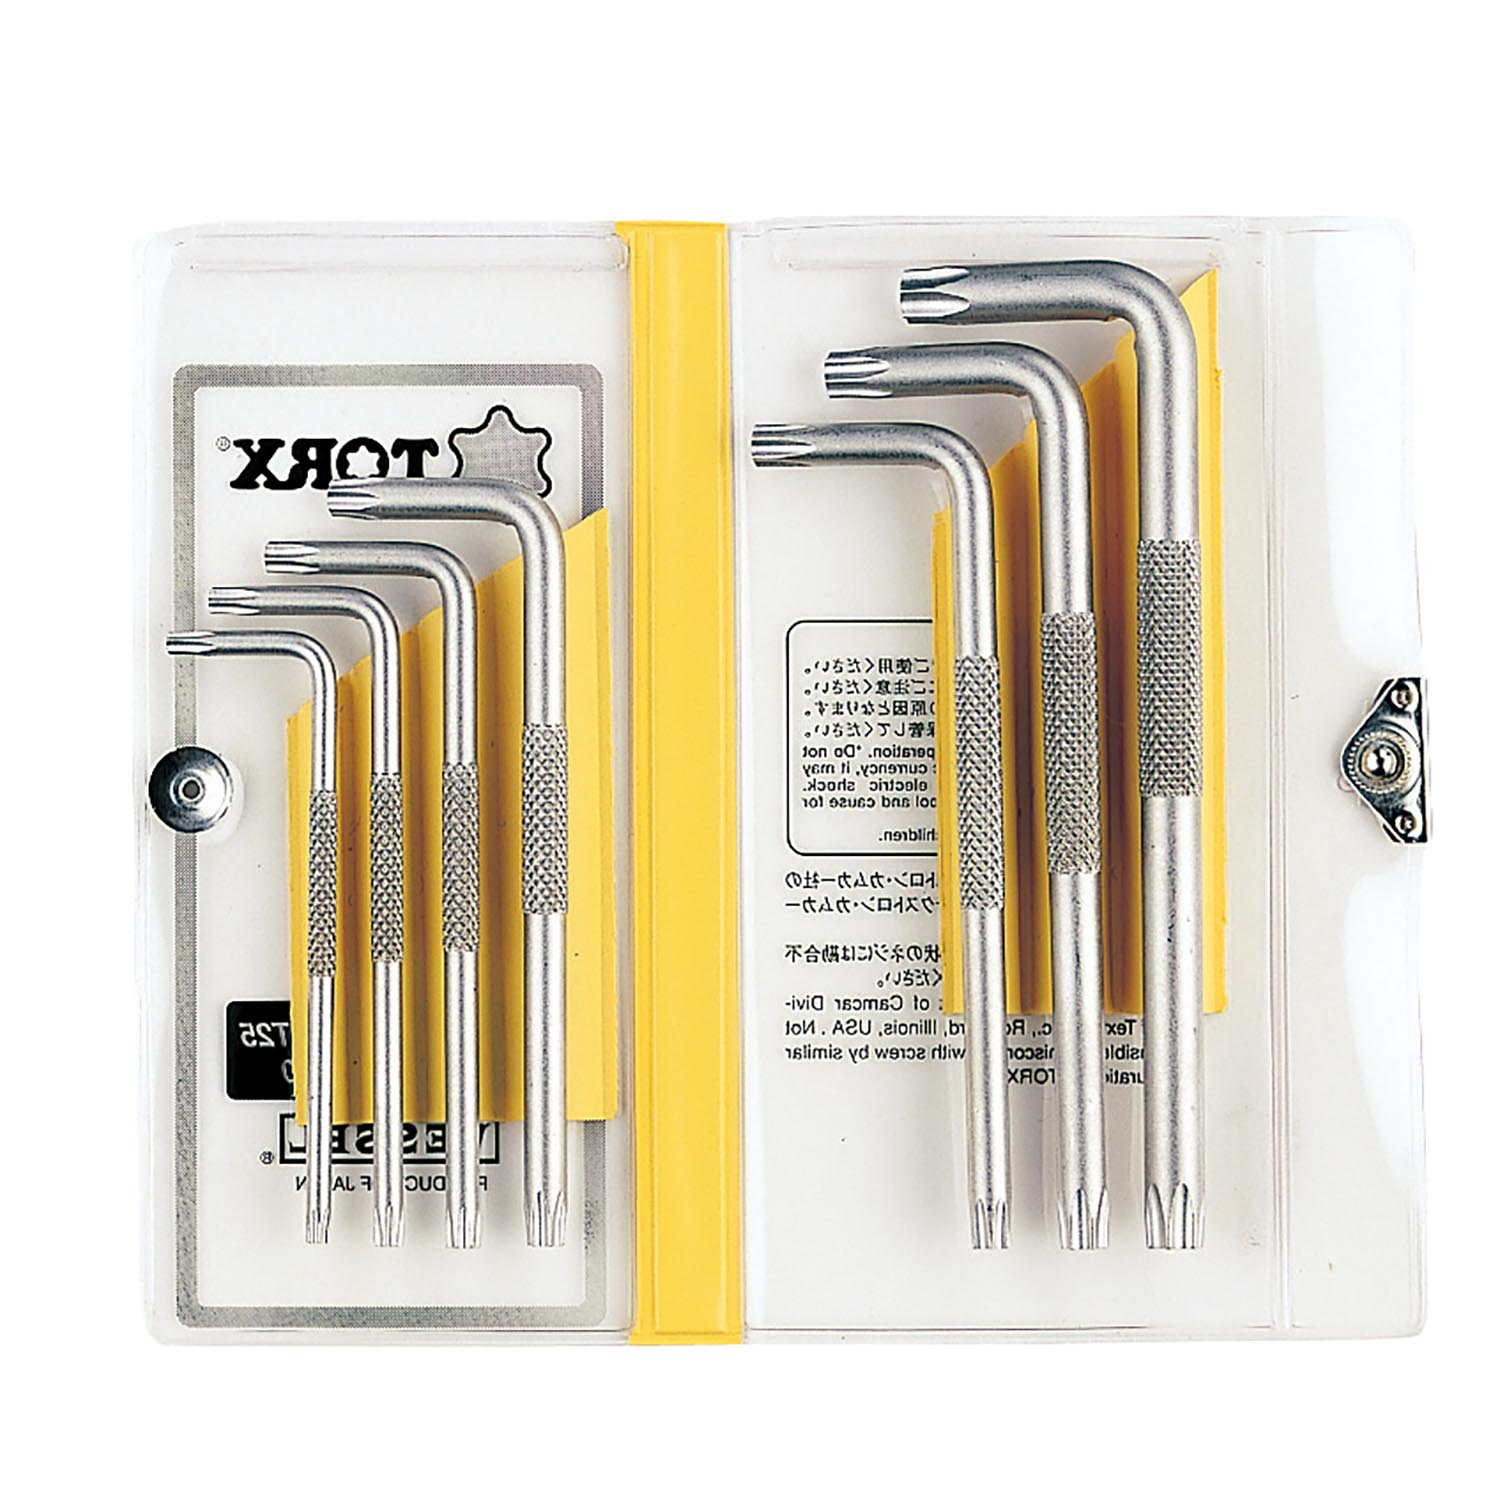 TORX 7-Piece Key Wrench Set No.8507TX(8500TX 7PC Set)